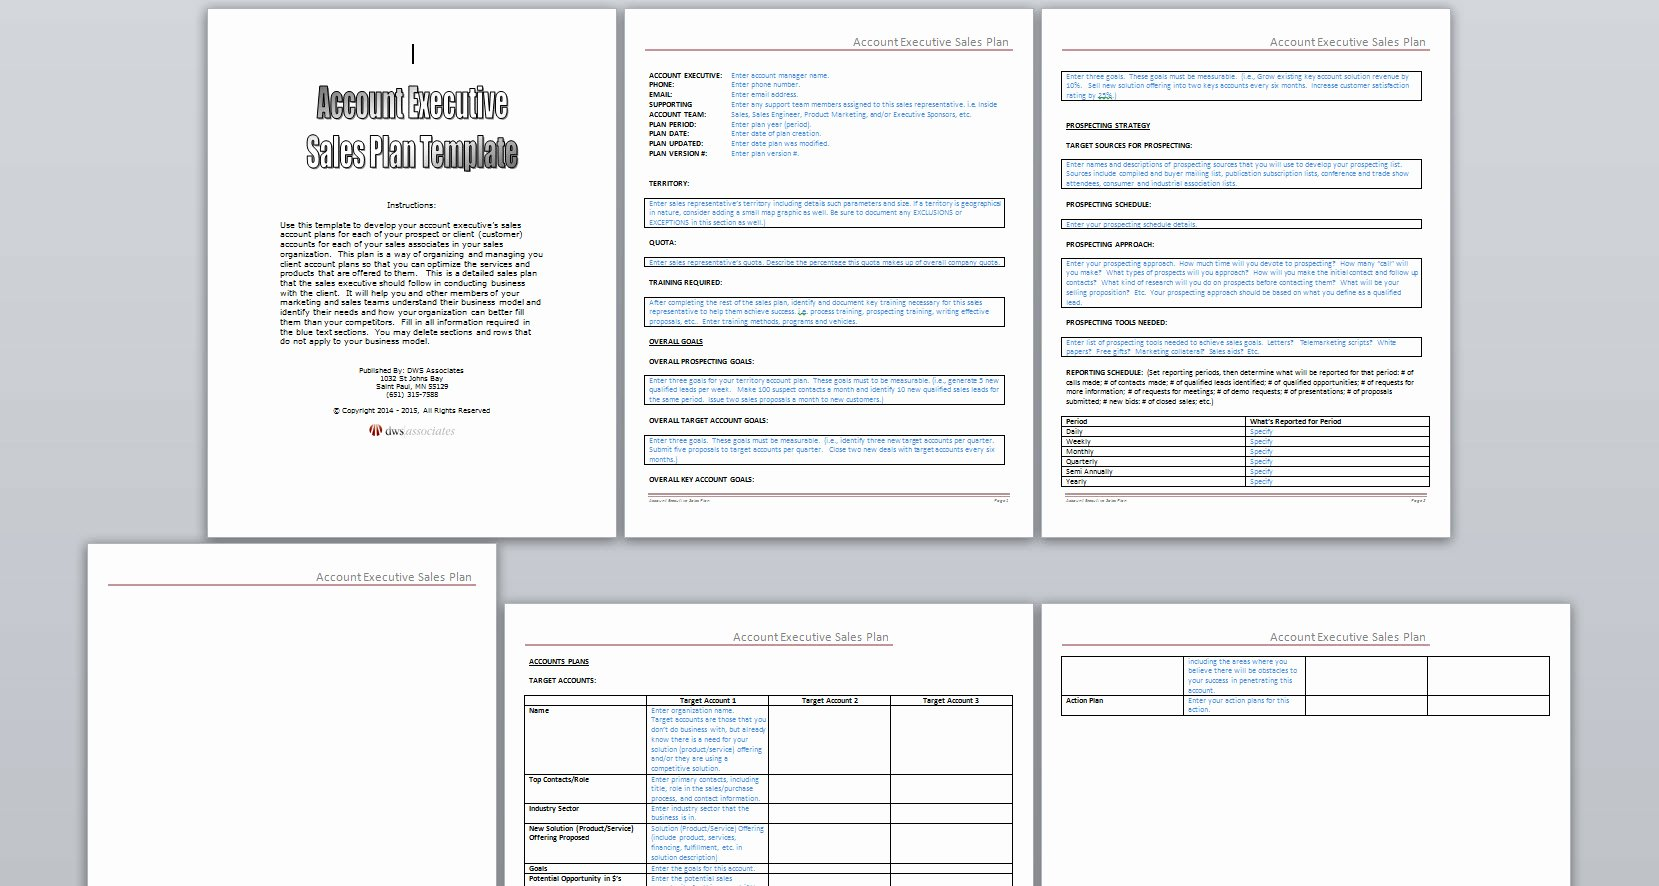 Sales Strategy Plan Template Inspirational Dws associates Account Executive Sales Plan Template